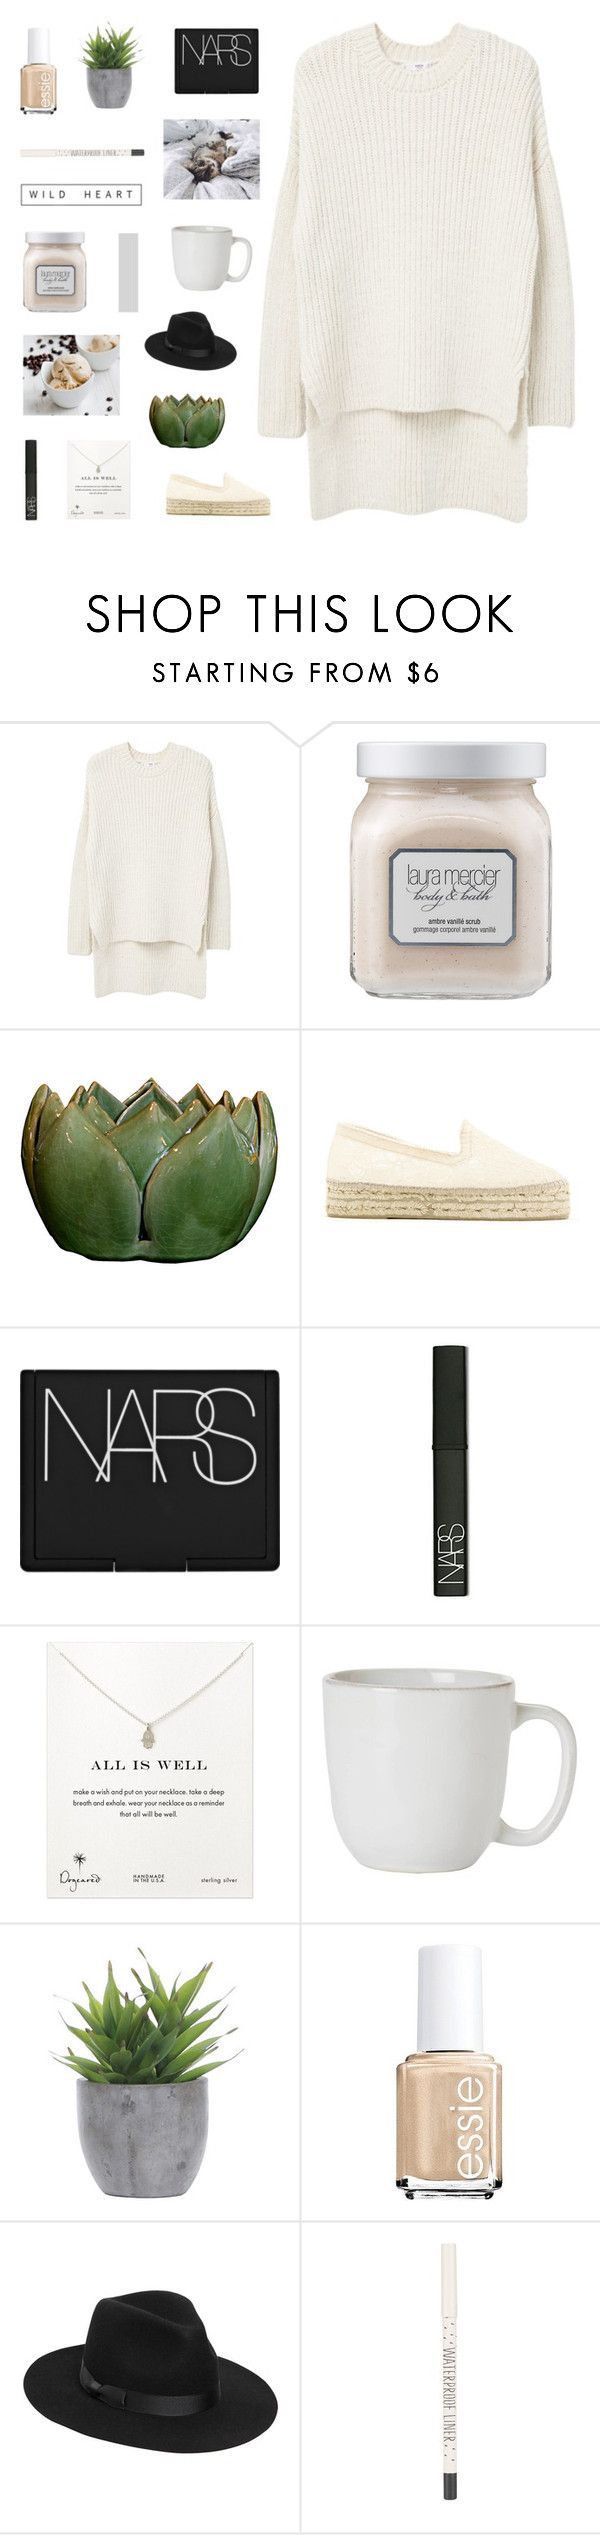 """begin again"" by made-of-starlight ❤ liked on Polyvore featuring MANGO, Laura Mercier, Manebí, NARS Cosmetics, Dogeared, Juliska, Lux-Art Silks, Essie, Lack of Color and Topshop"